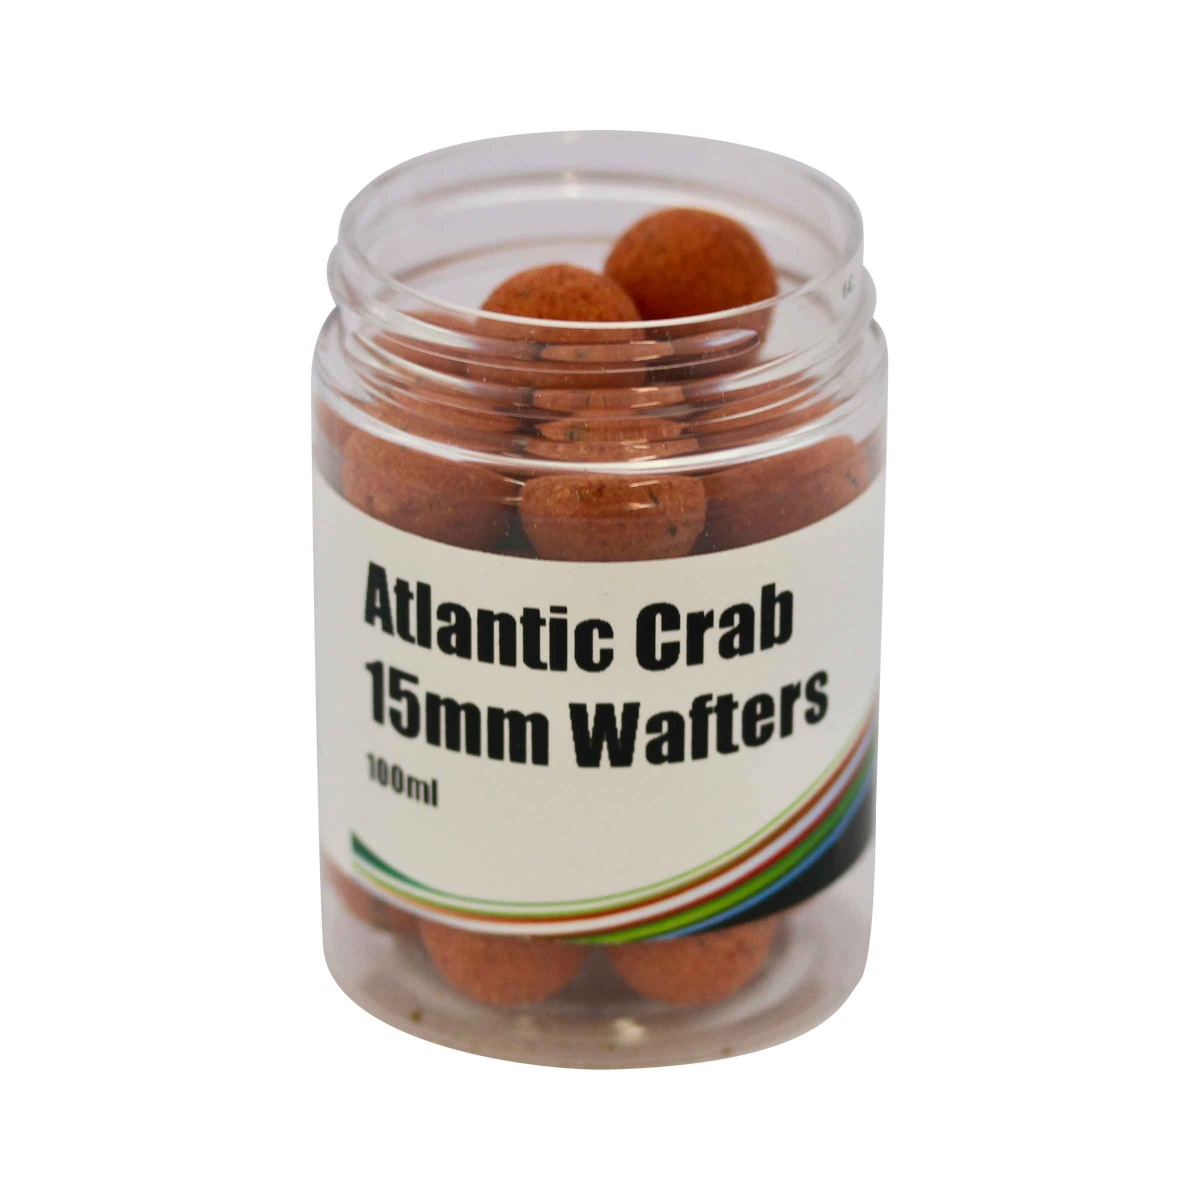 Atlantic Crab Wafters 15mm